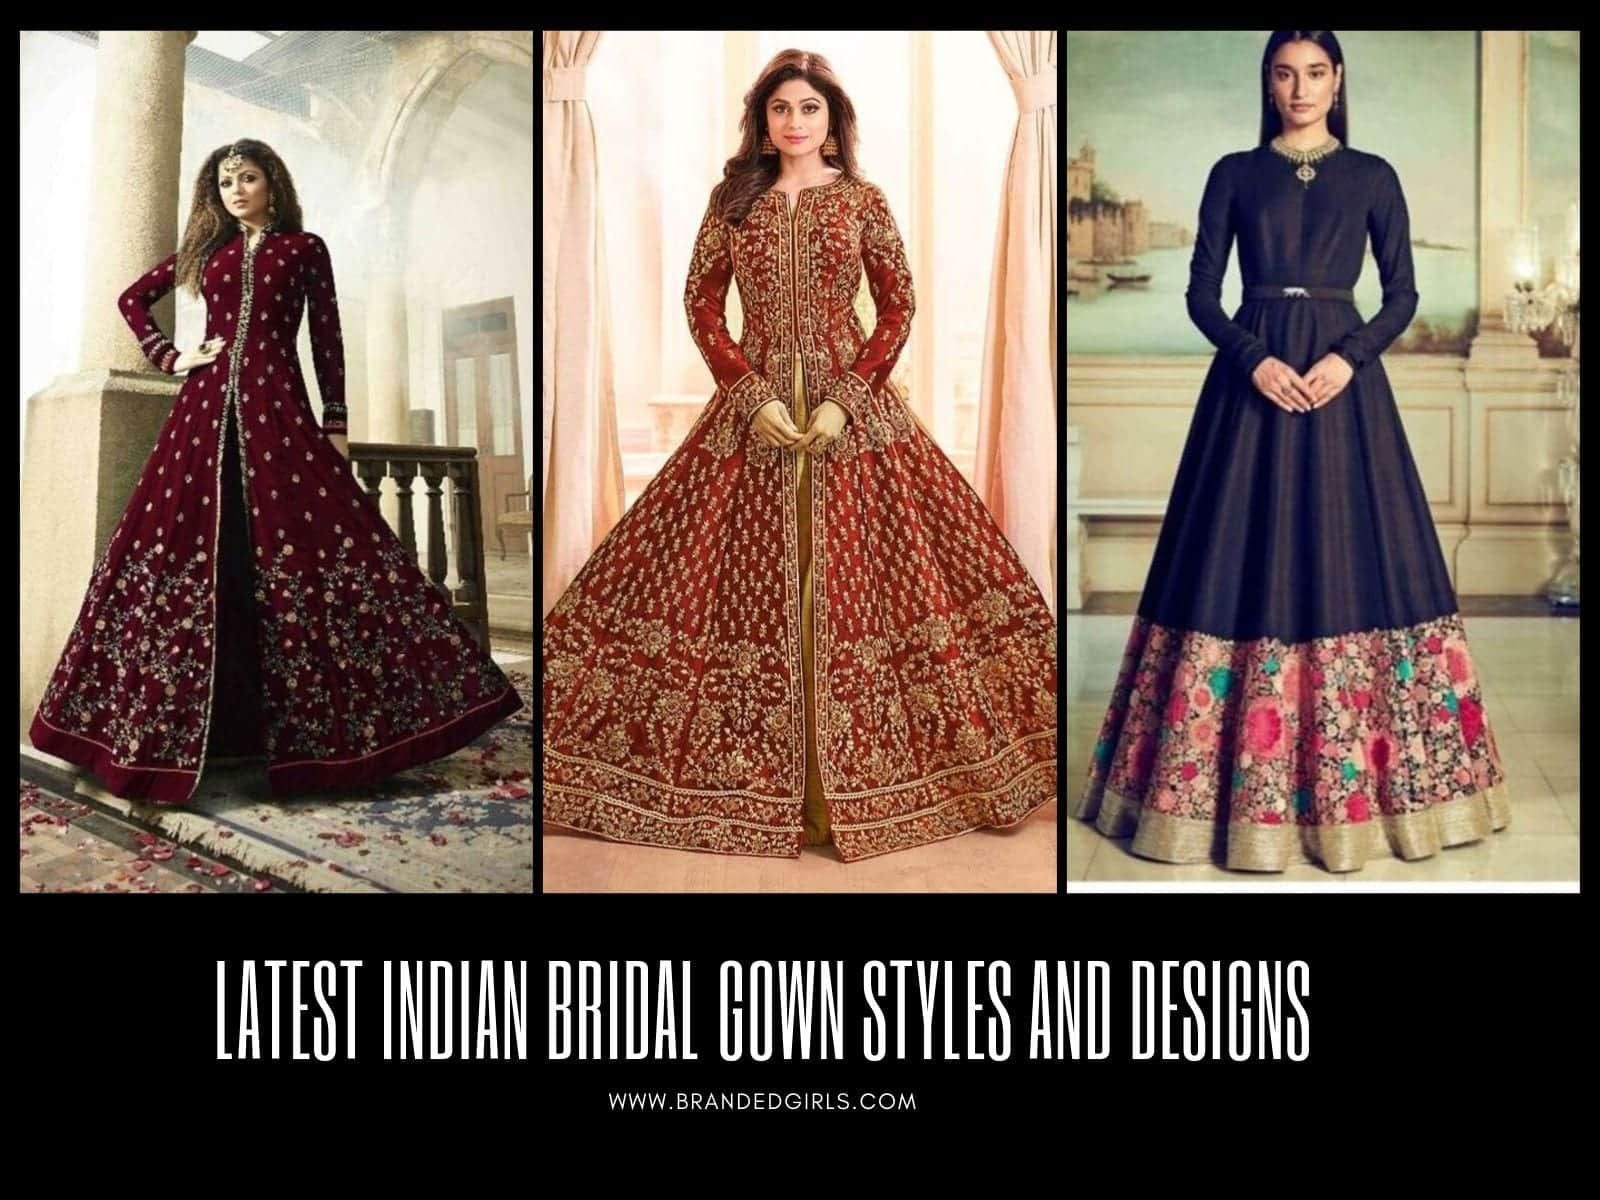 Latest-Indian-Gown-Designs 30 Latest Indian Bridal Gown Styles and Designs to Try this Year